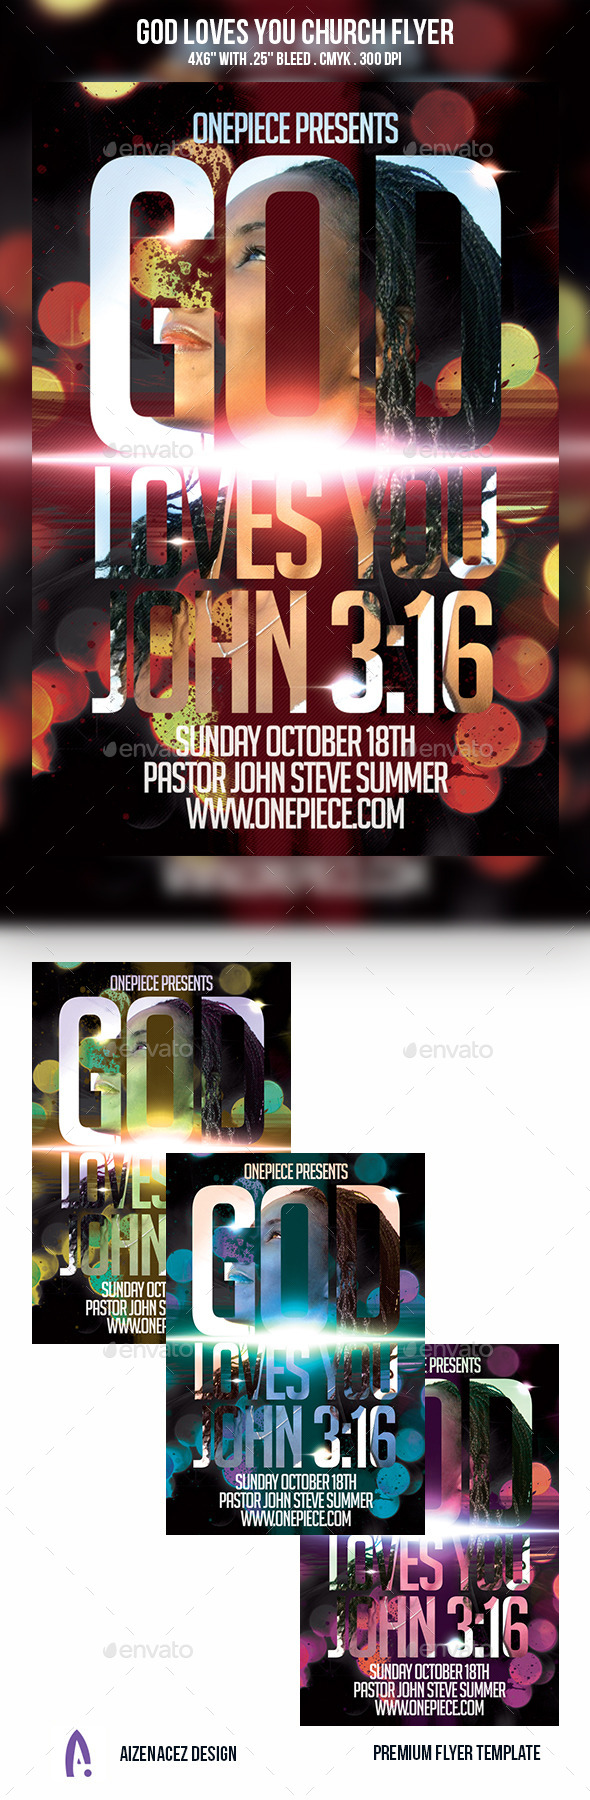 GraphicRiver God Loves You Church Flyer 9209405